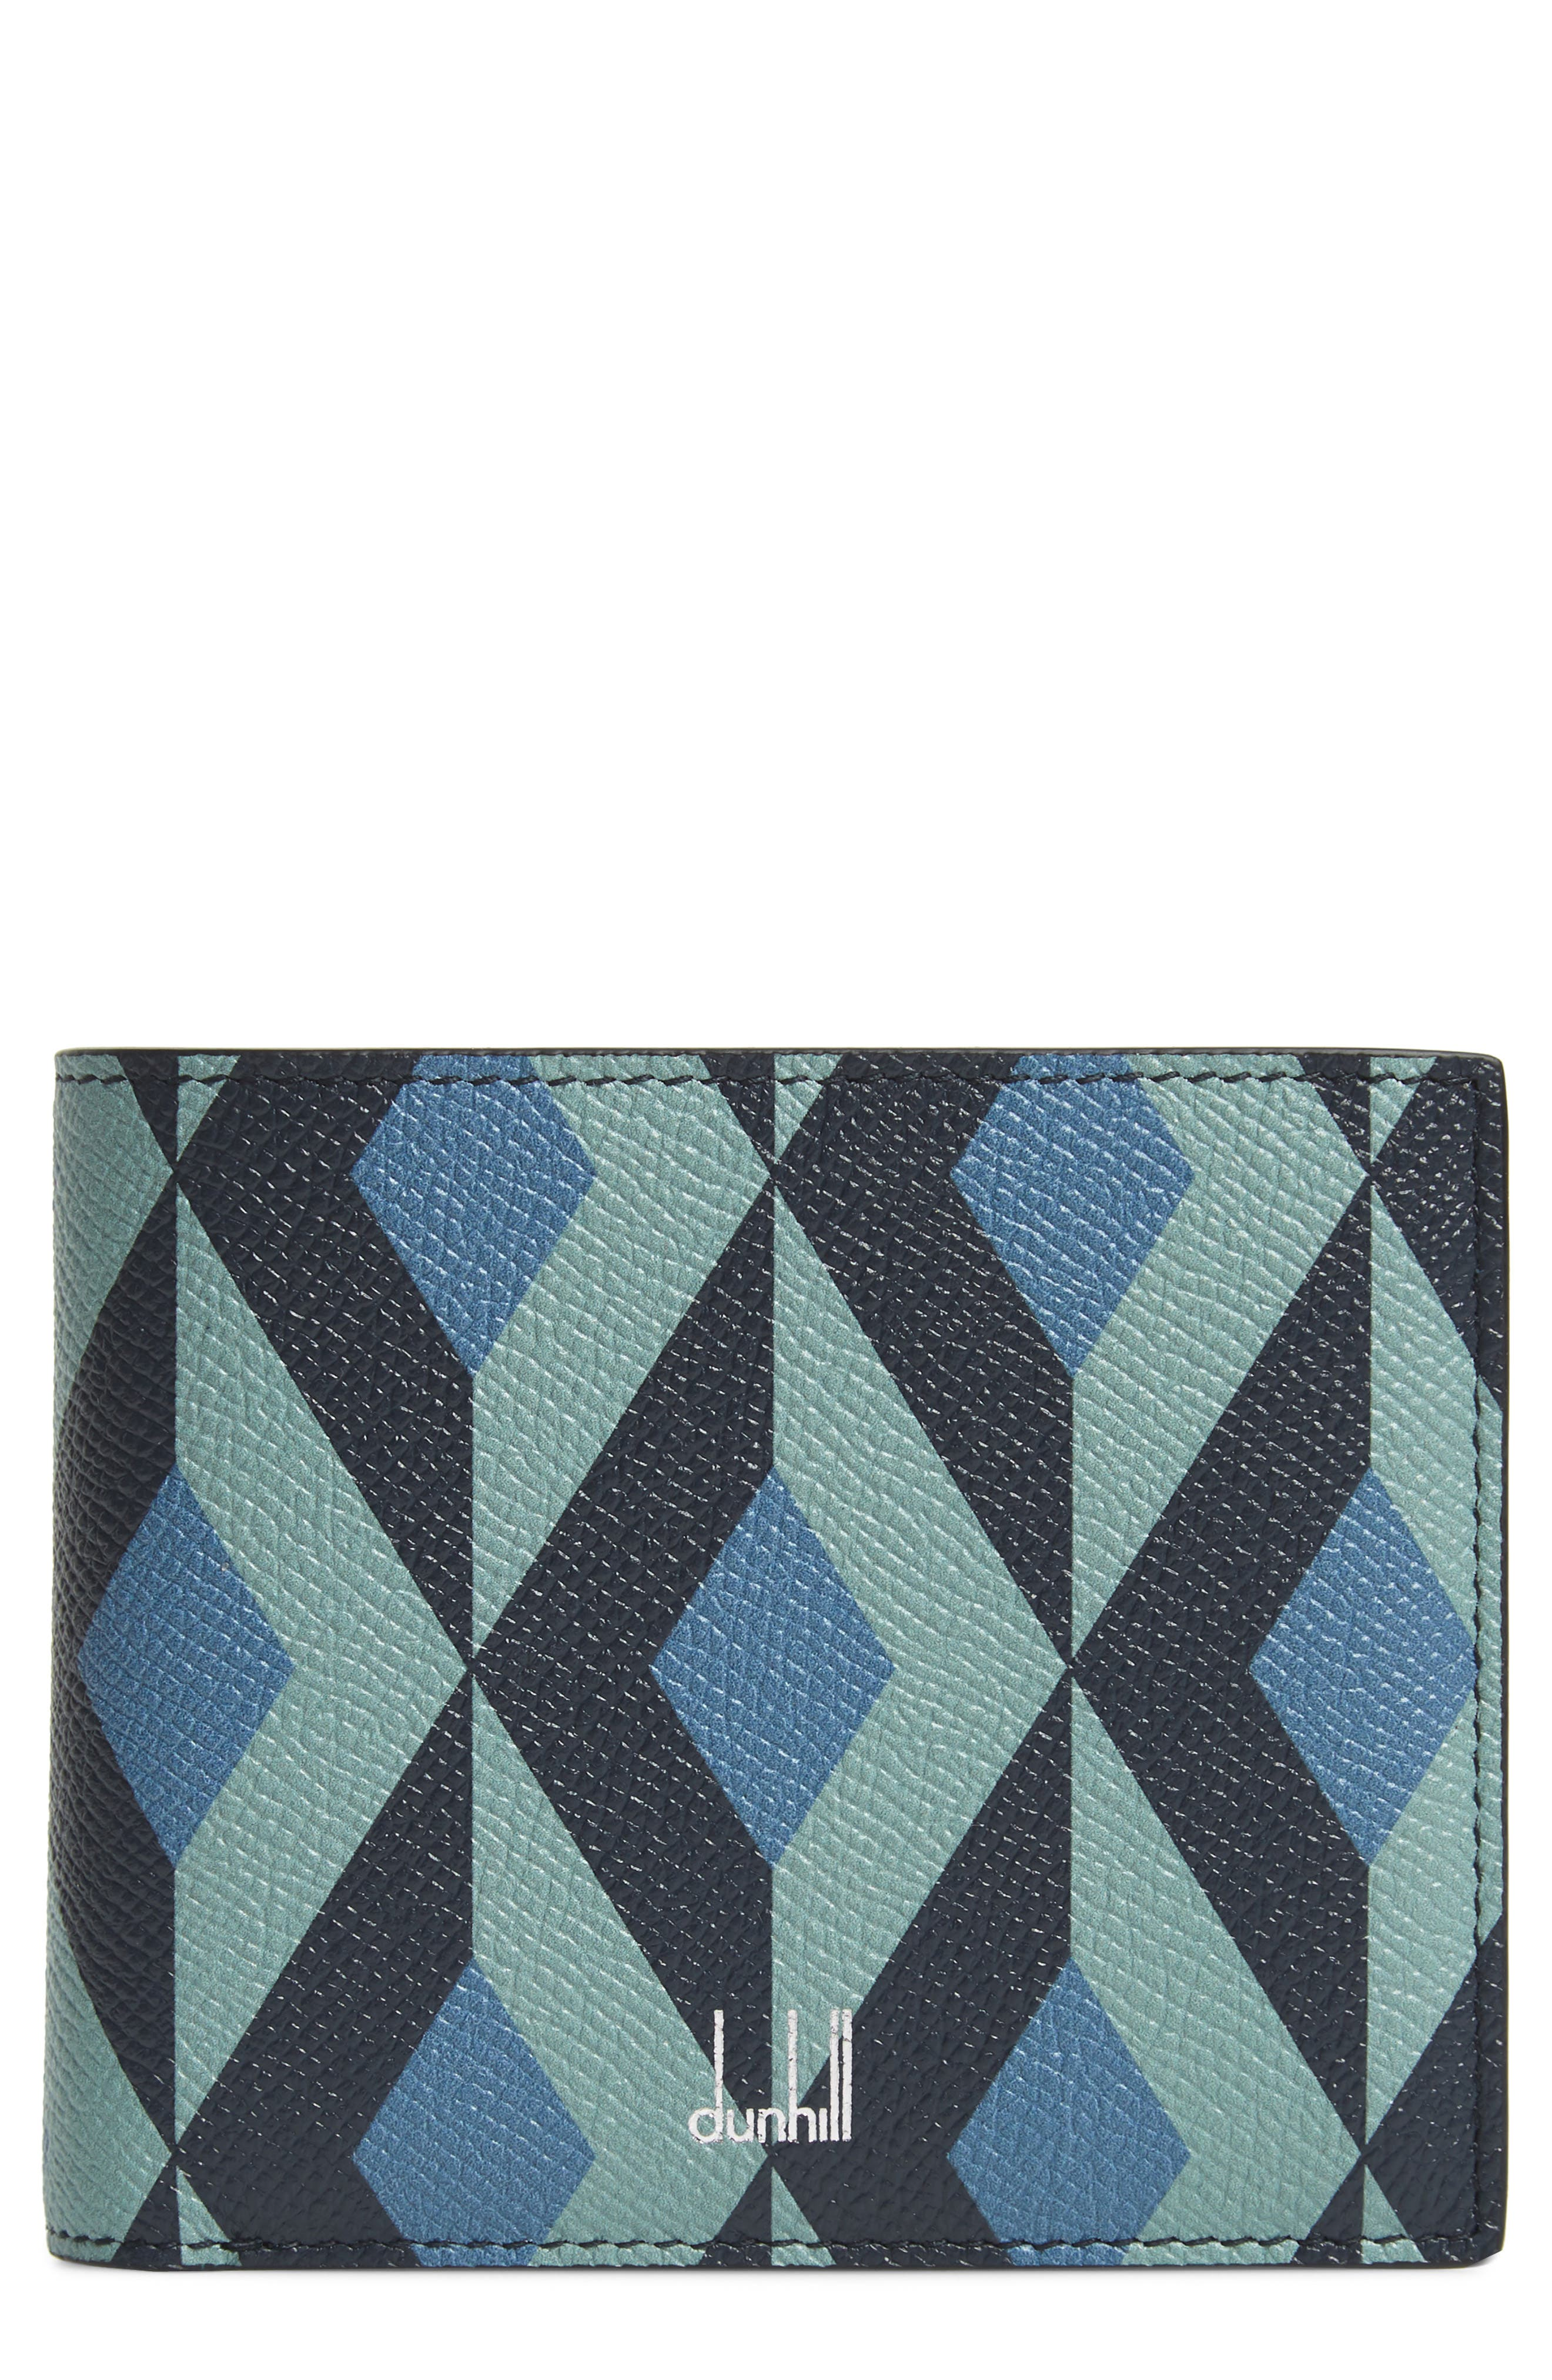 DUNHILL Cadogan Leather Wallet, Main, color, STONE BLUE